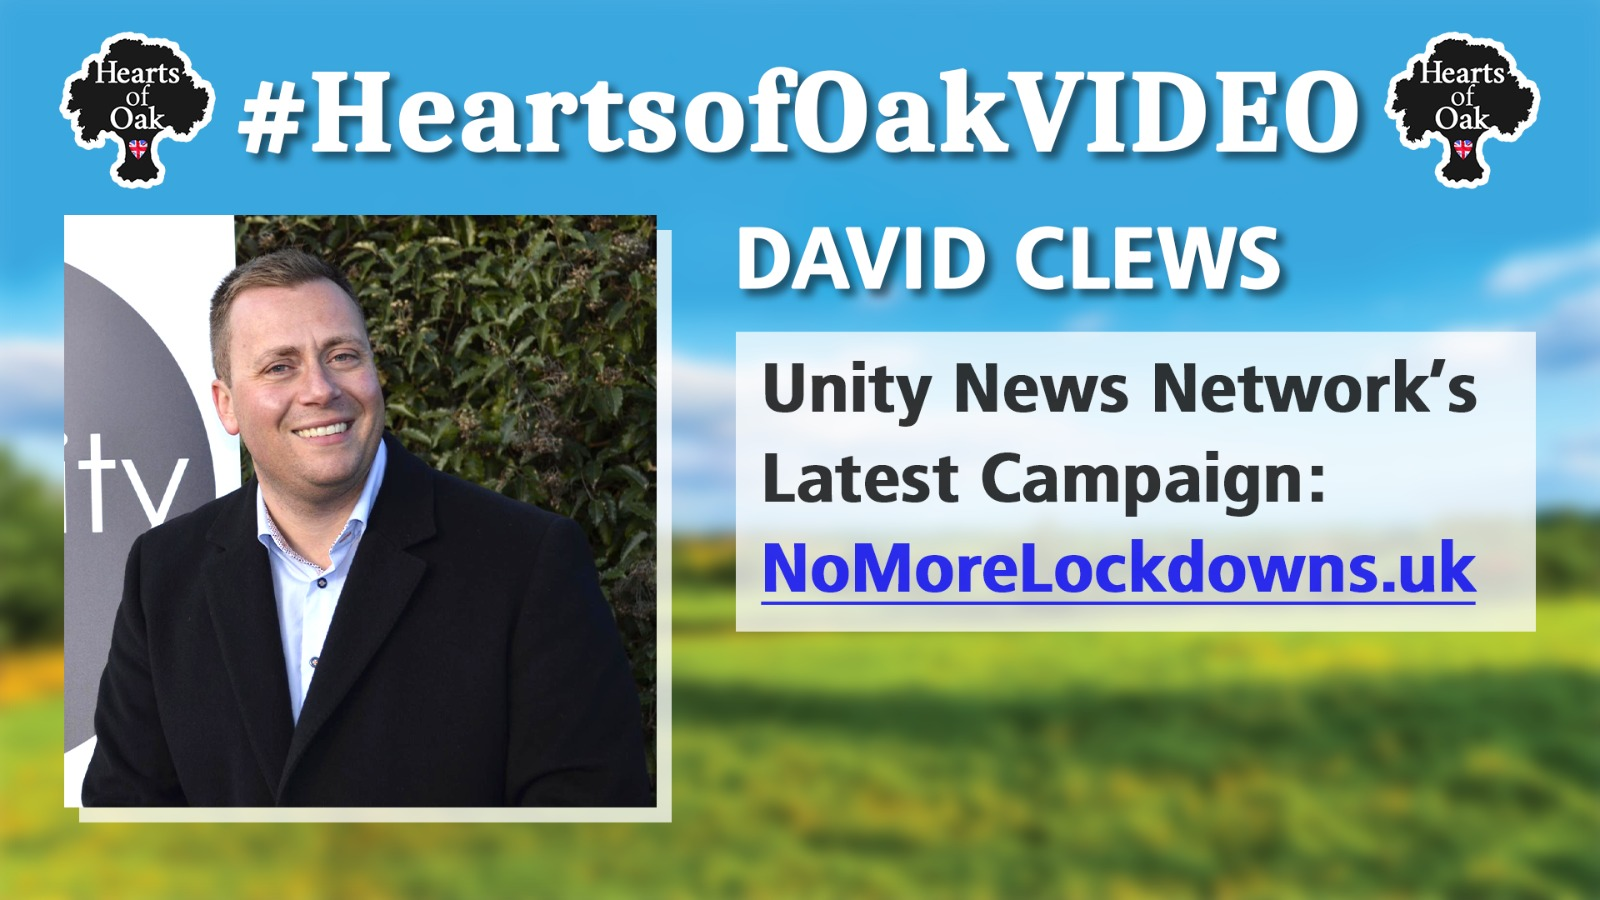 David Clews: Unity News Network's Latest Campaign NoMoreLockdowns